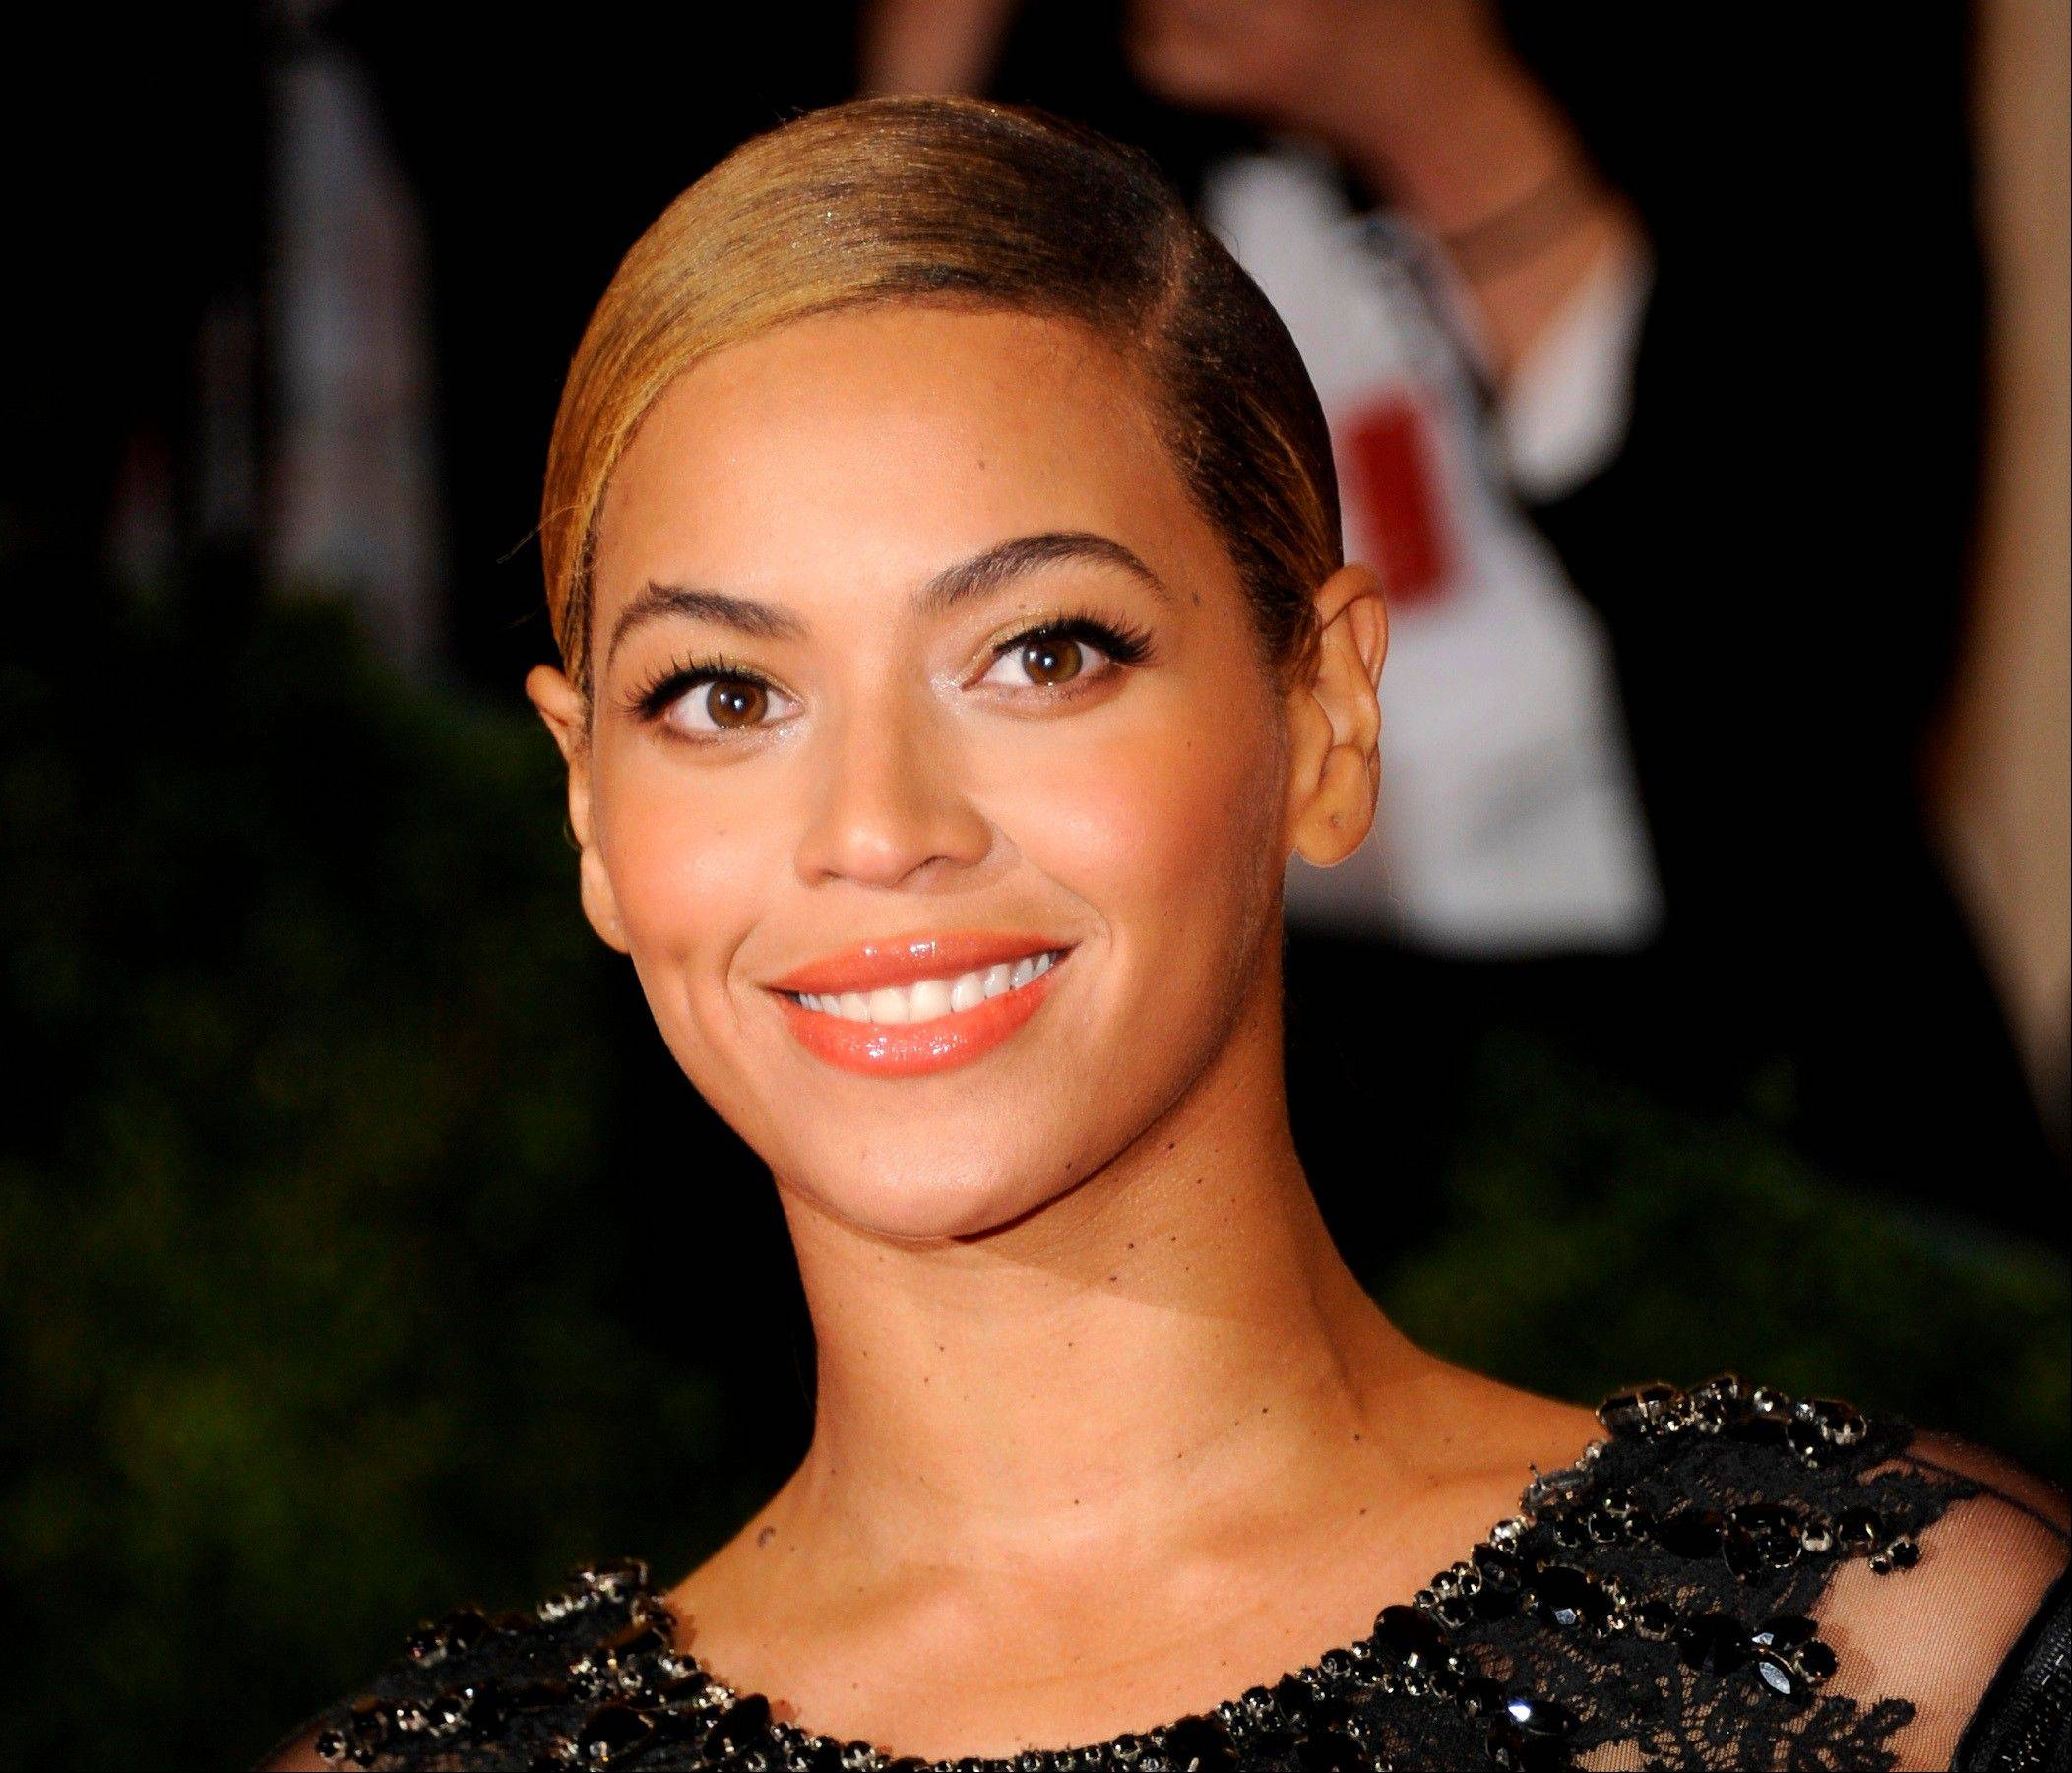 HBO announced Monday that a documentary about Beyoncé will debut Feb. 16, 2013. Beyoncé is directing the film and it will include footage she shot herself with her laptop.